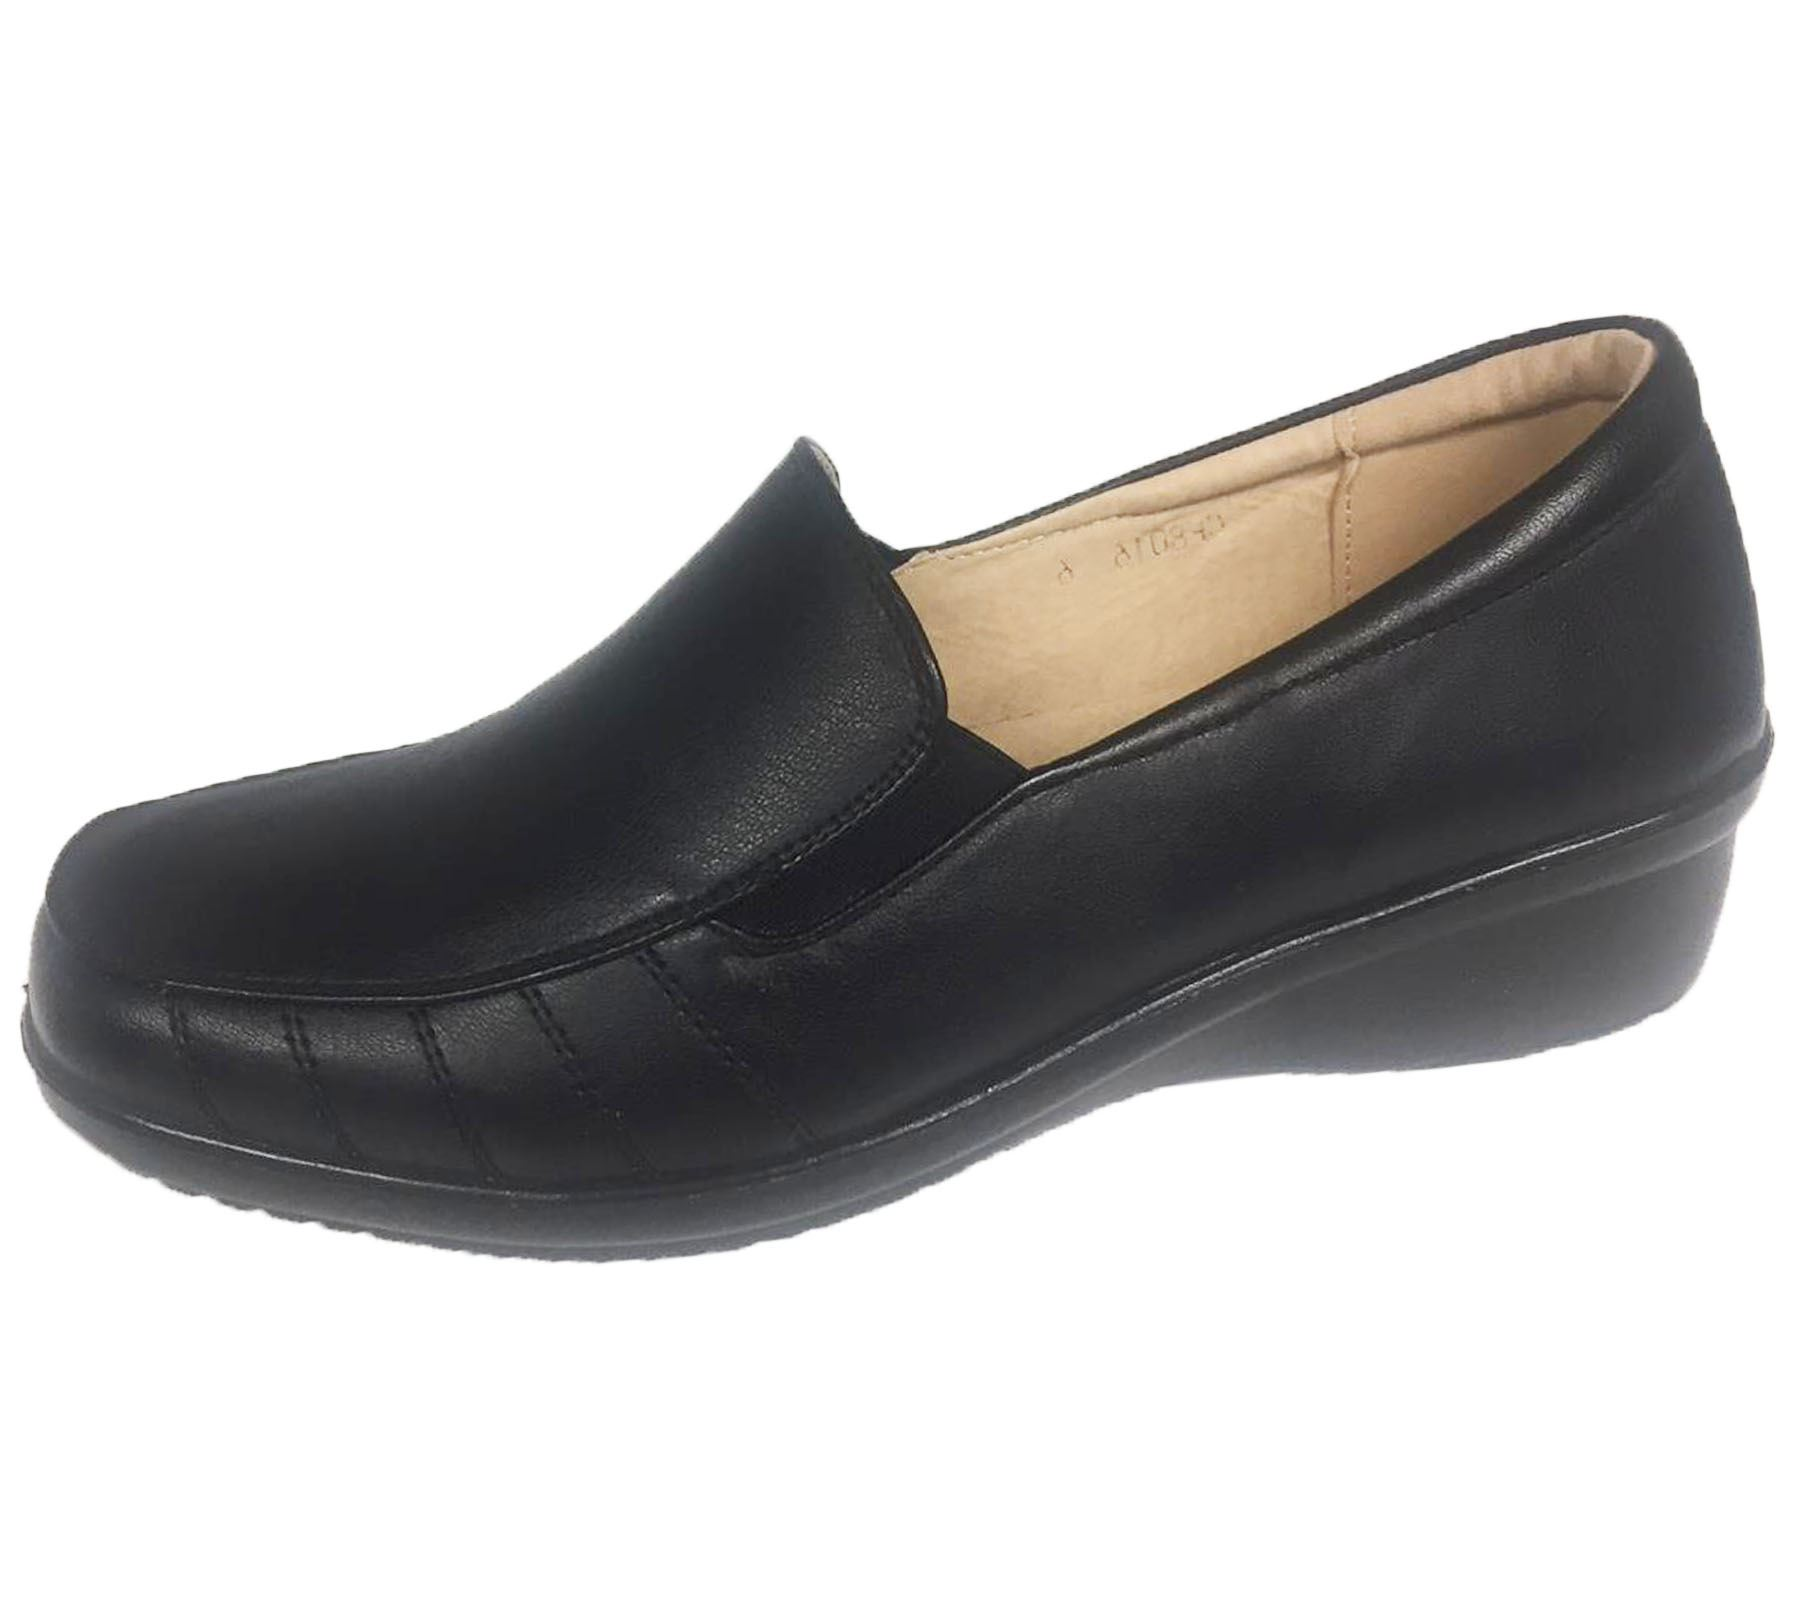 Ladies-Loafer-Moccasin-Womens-Casual-Comfort-Walk-Pumps-Slip-On-Shoes thumbnail 7